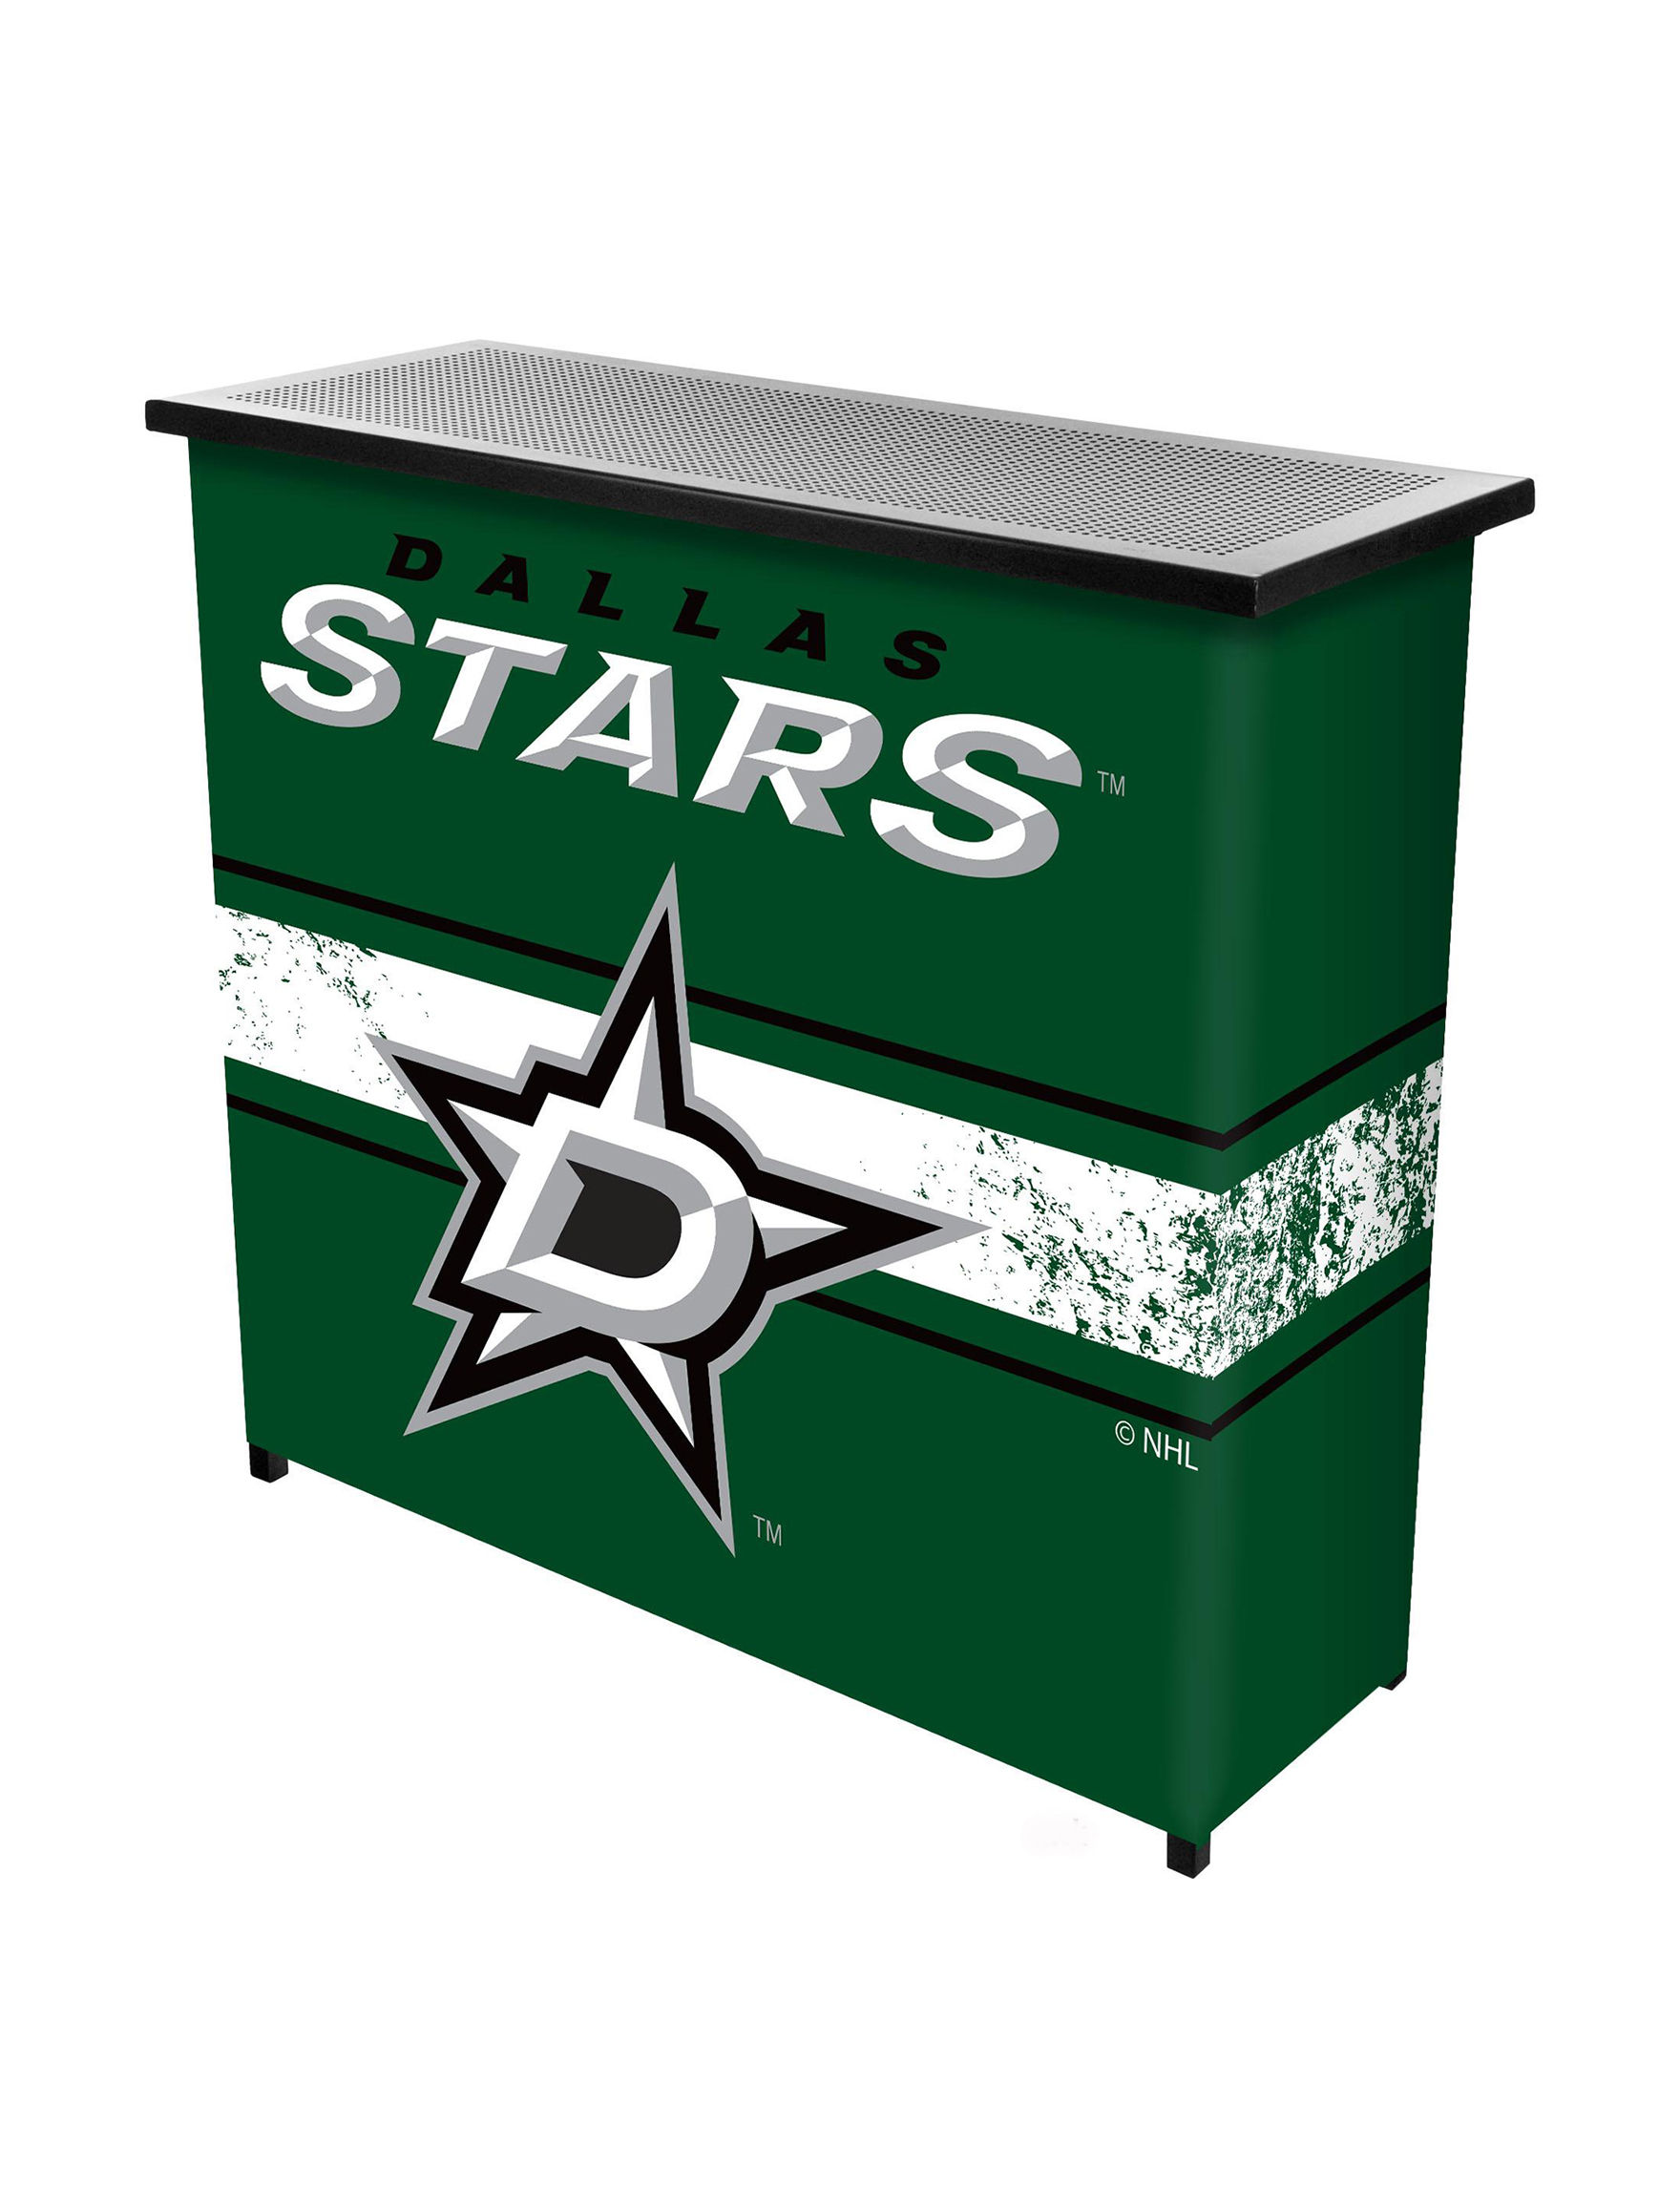 NHL Green Bar & Wine Storage Game Room Outdoor Entertaining